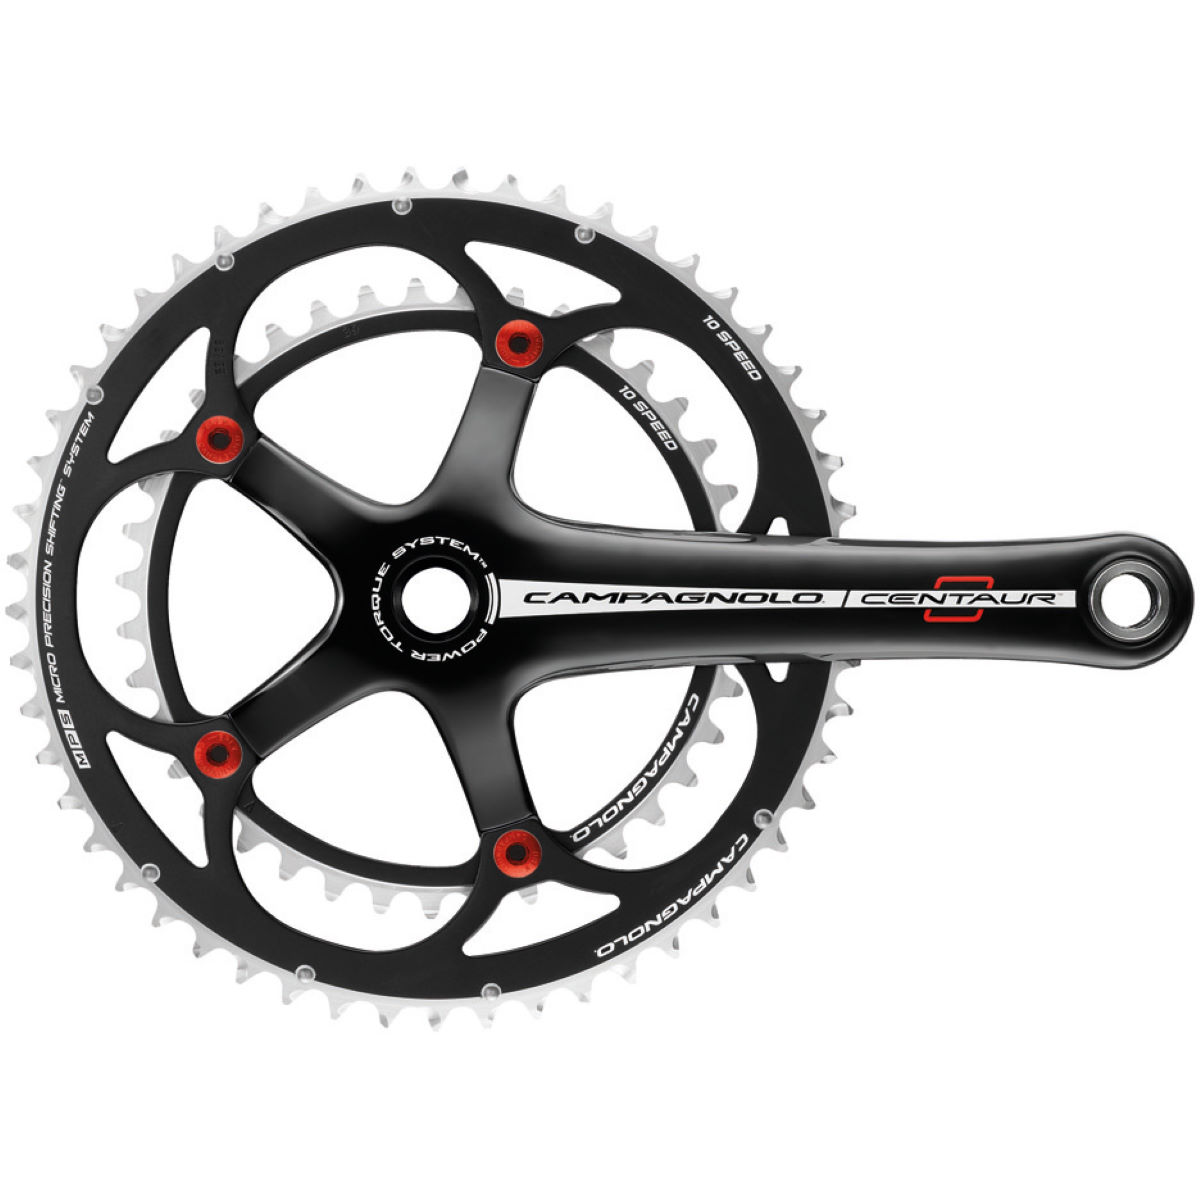 Campagnolo Centaur Red 10 Speed P-Torque Alloy Chainset